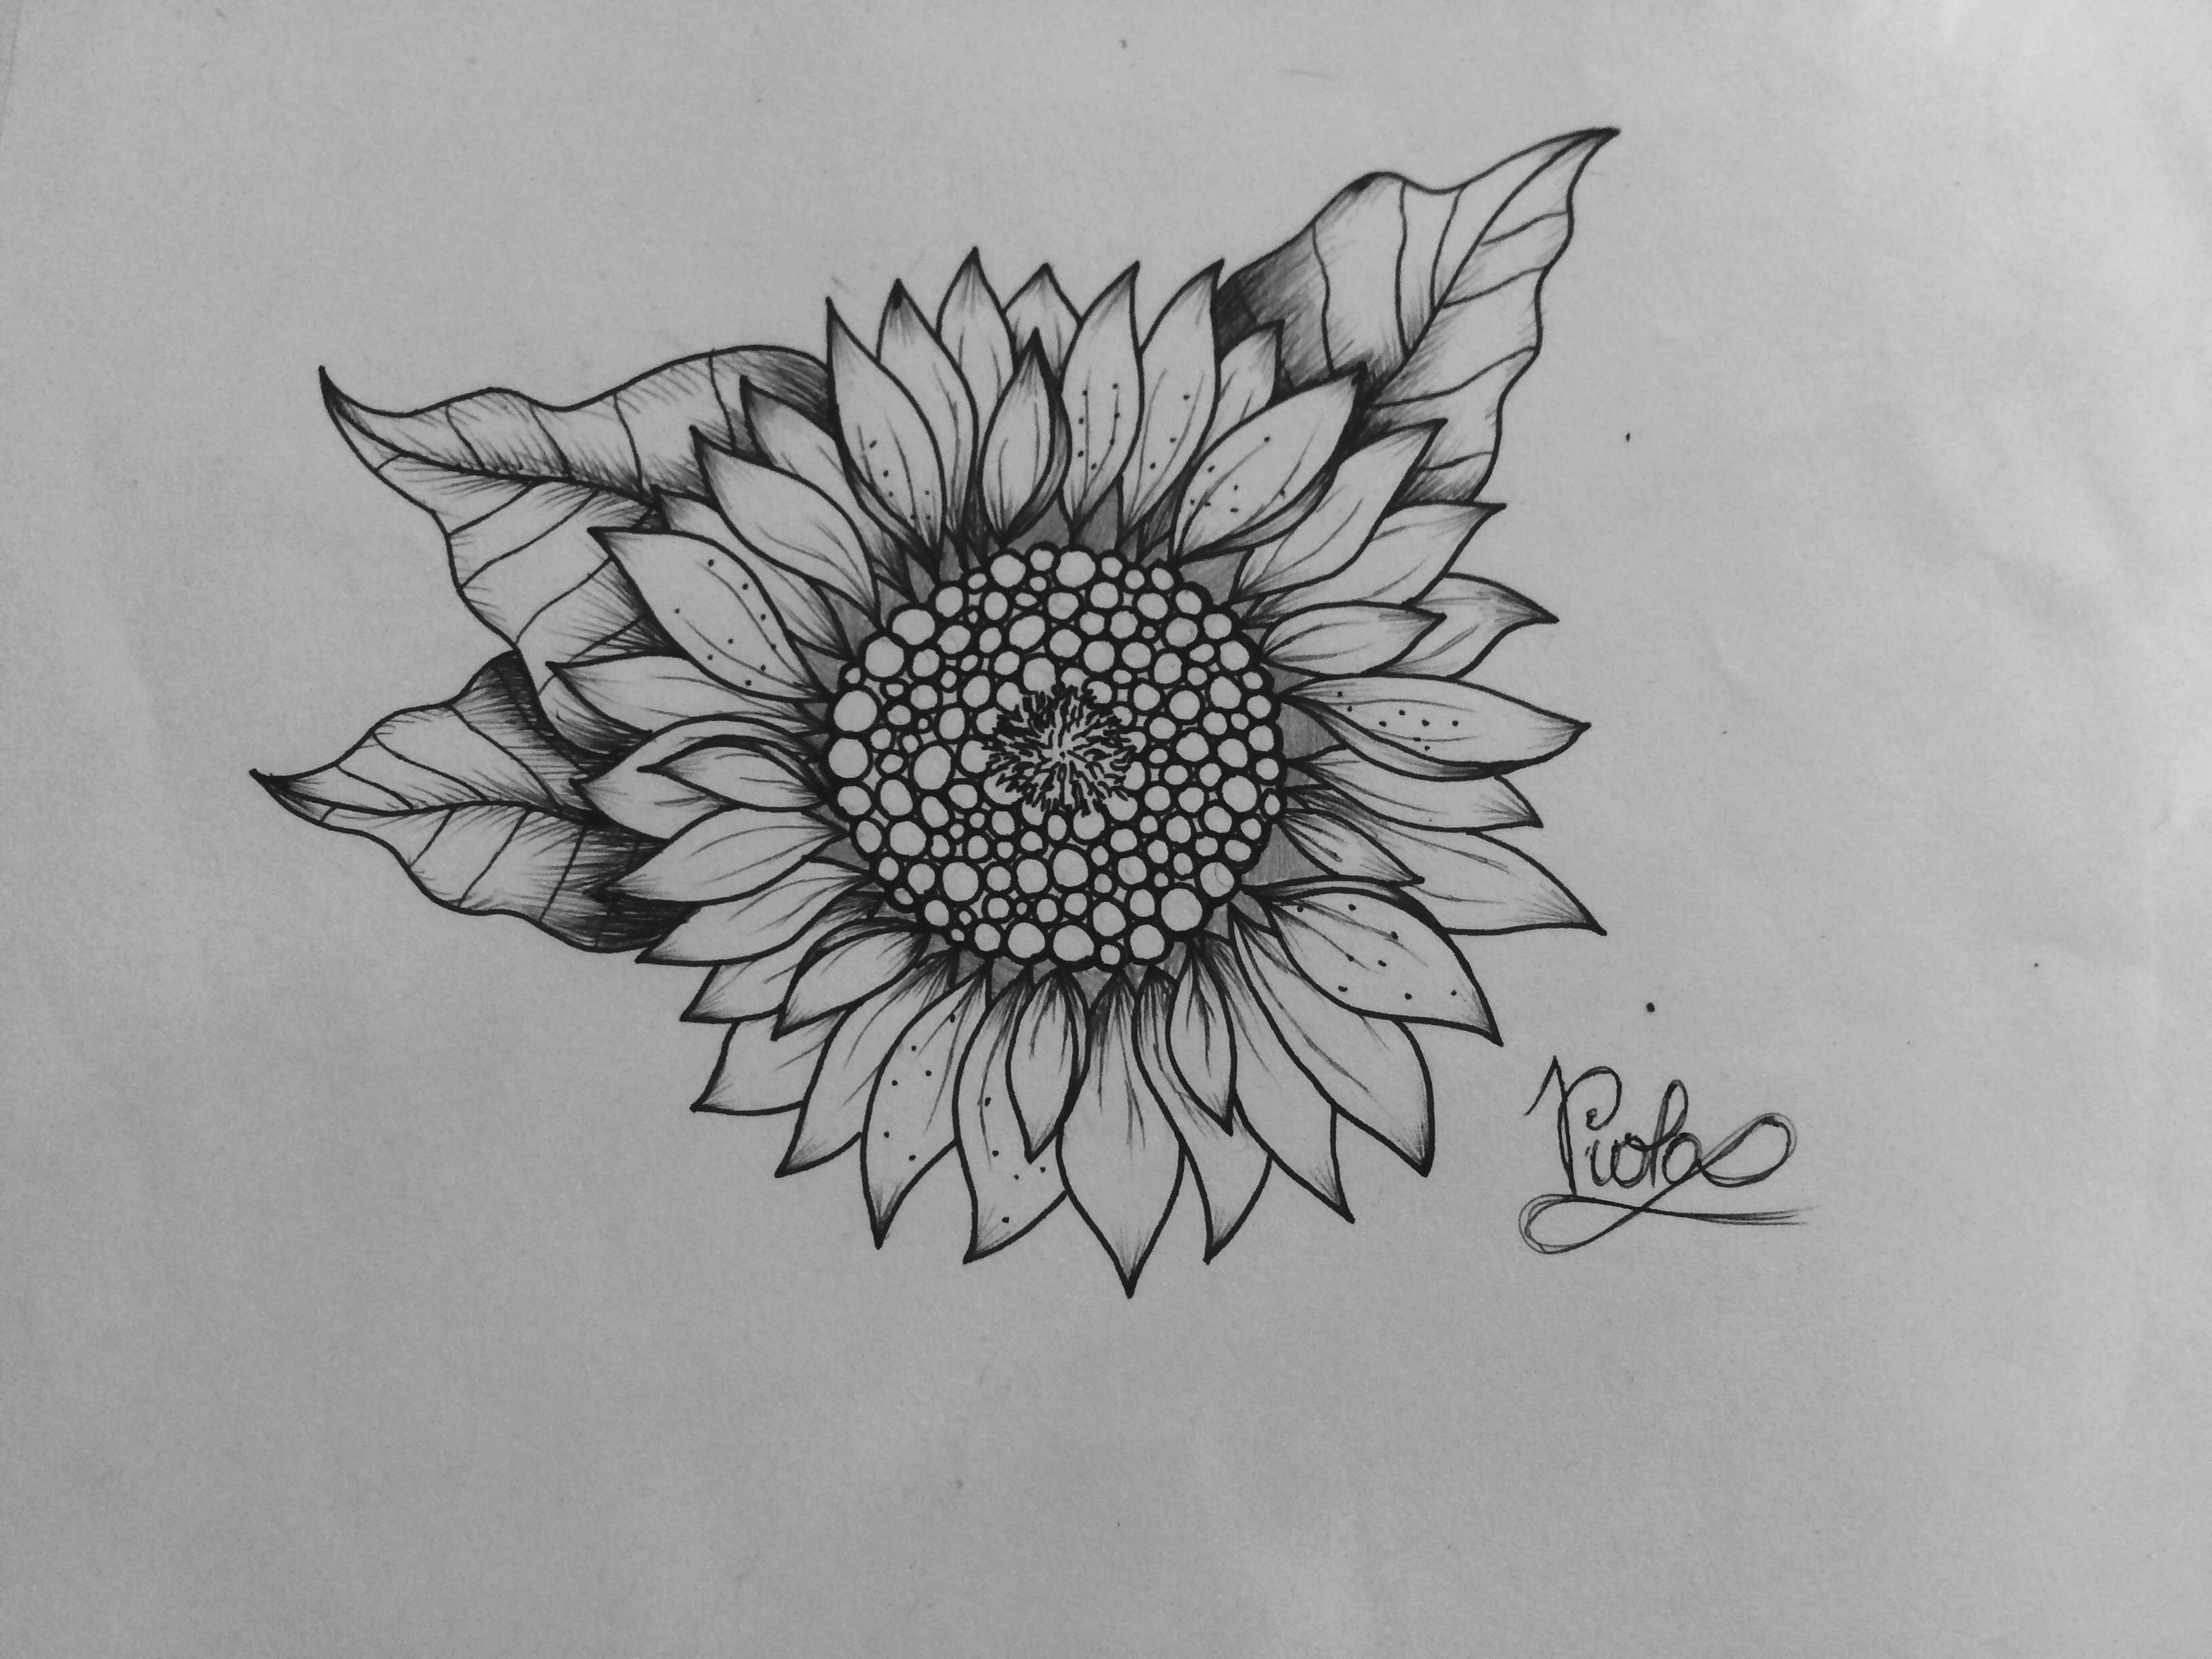 sun flower drawing best sunflower drawings images free vector art images flower sun drawing